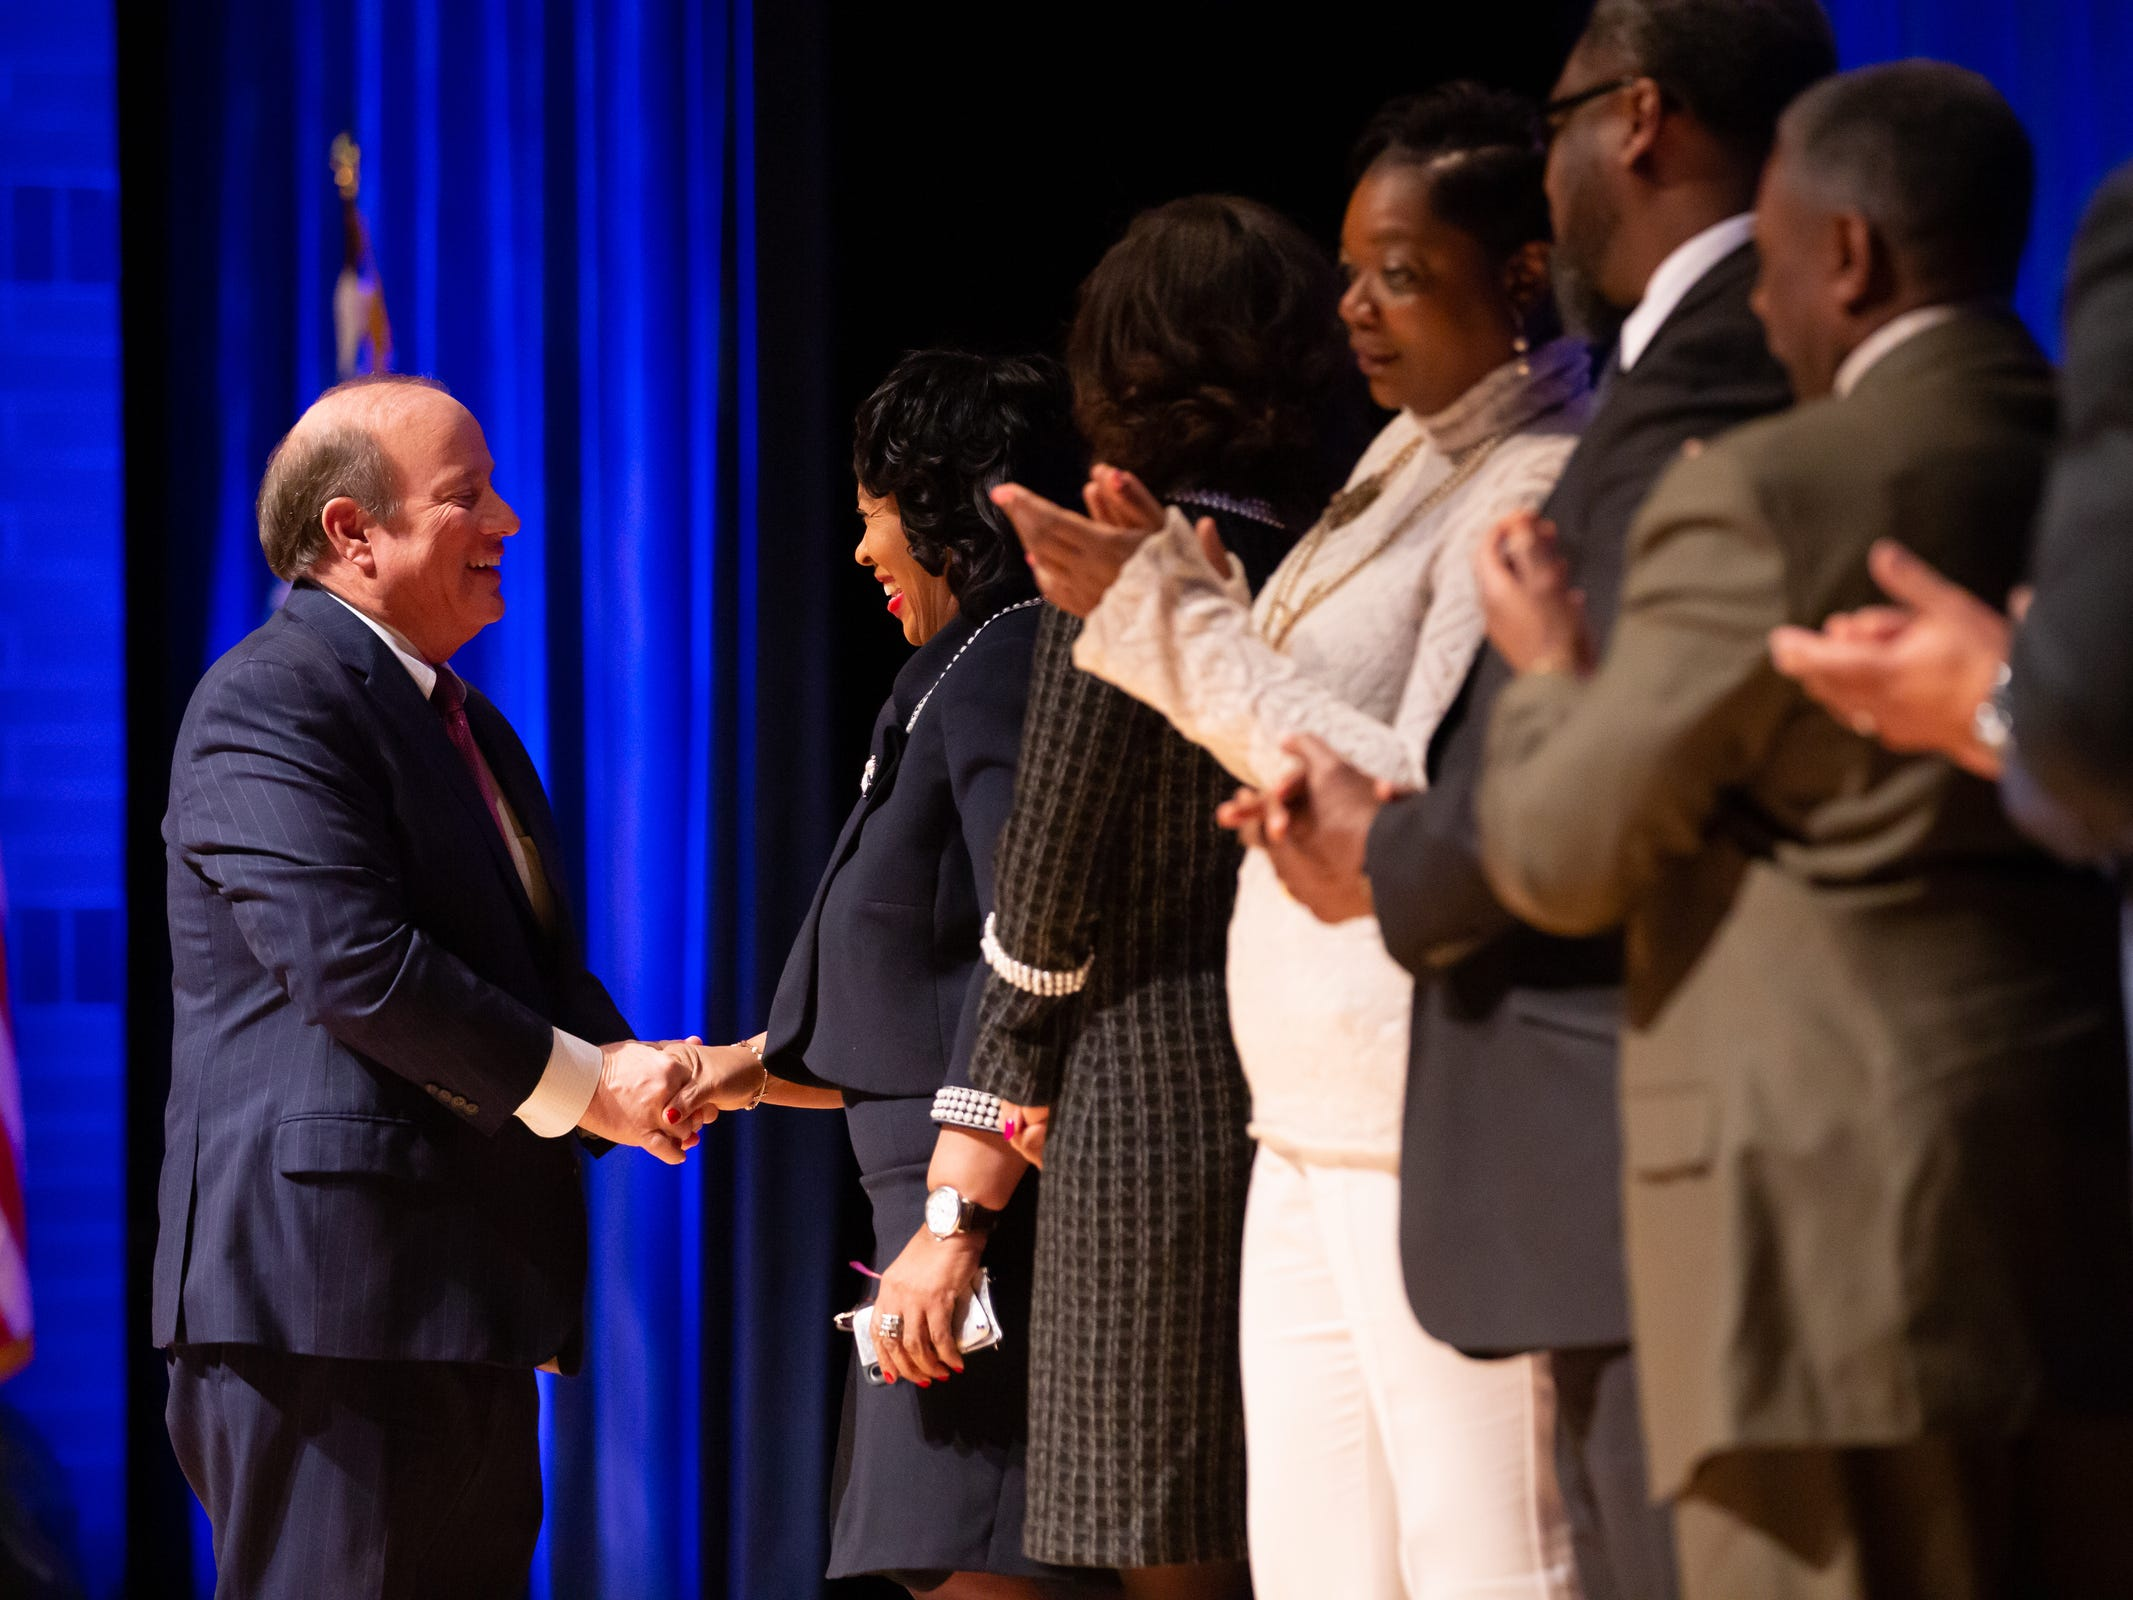 Detroit Mayor Mike Duggan shakes the hand of Detroit City Council President Brenda Jones before speaking during the 2019 State of the City Address on Tuesday, March 5, 2019 at East English Village Preparatory Academy in Detroit.